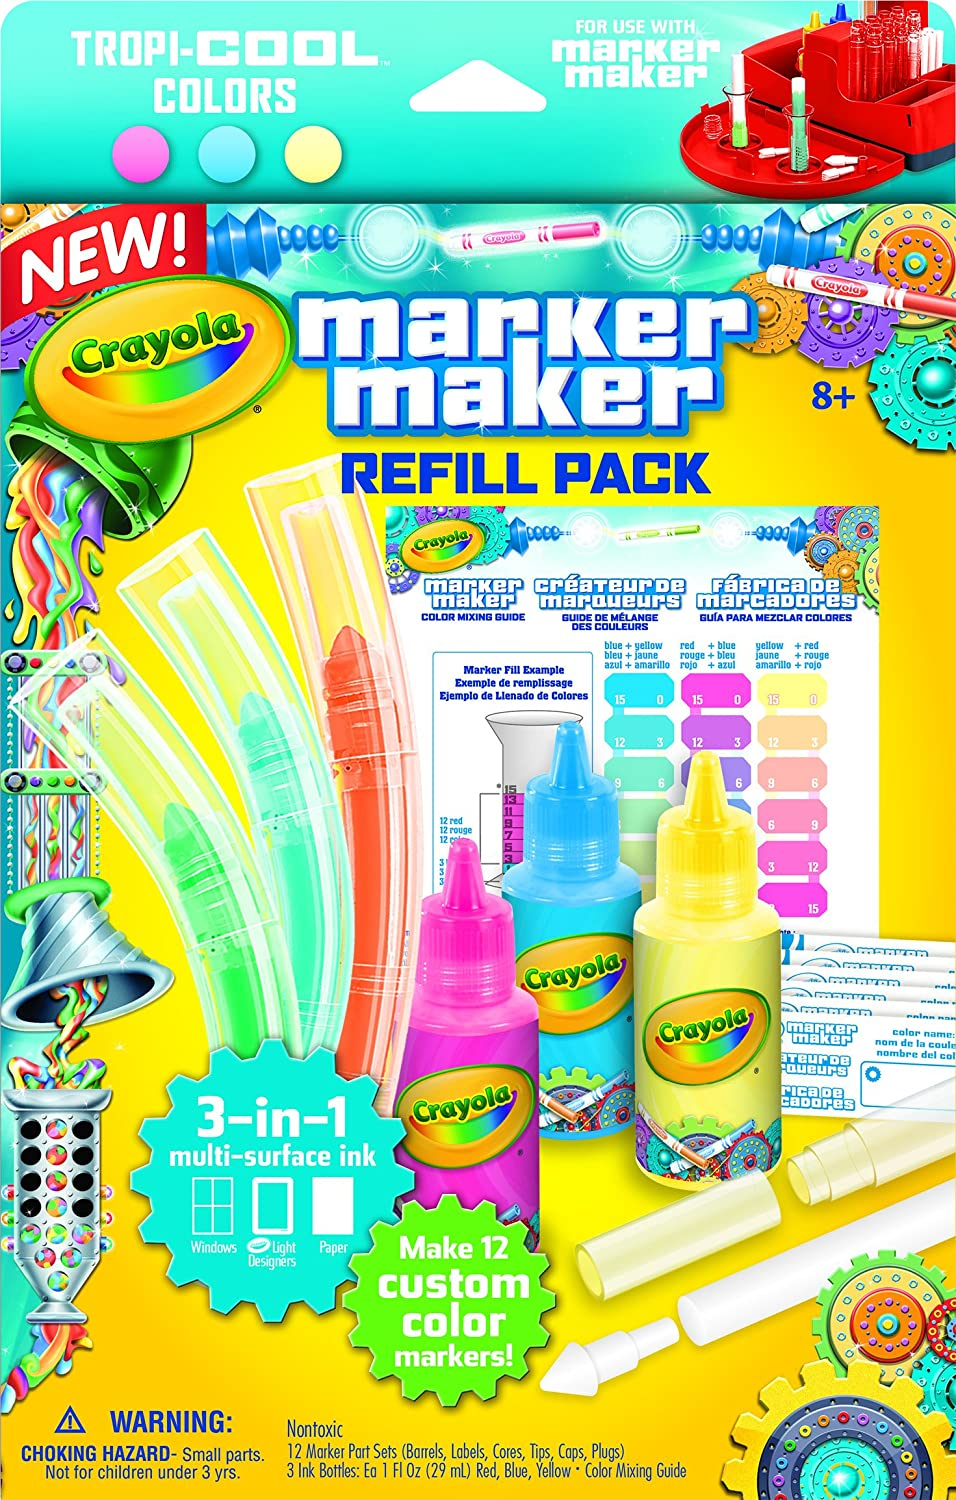 Amazon Com Crayola Marker Maker Refill Pack Makes 12 Custom Markers Ages 8 Up Toys Games